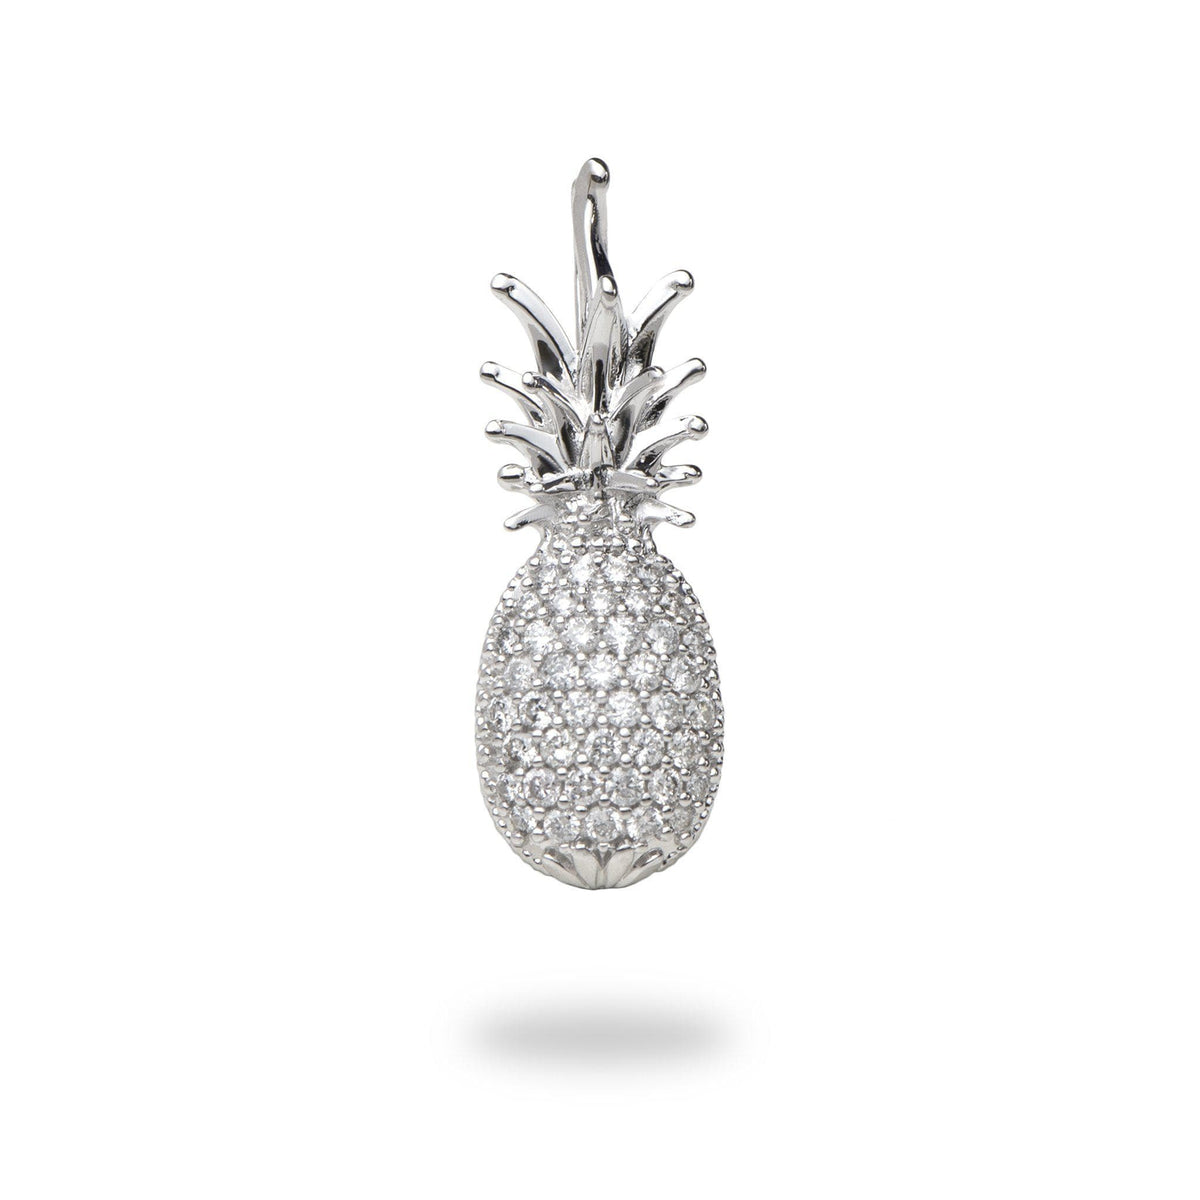 Pineapple Charm/Pendant in 14K White Gold with Diamonds- 20mm-[SKU]